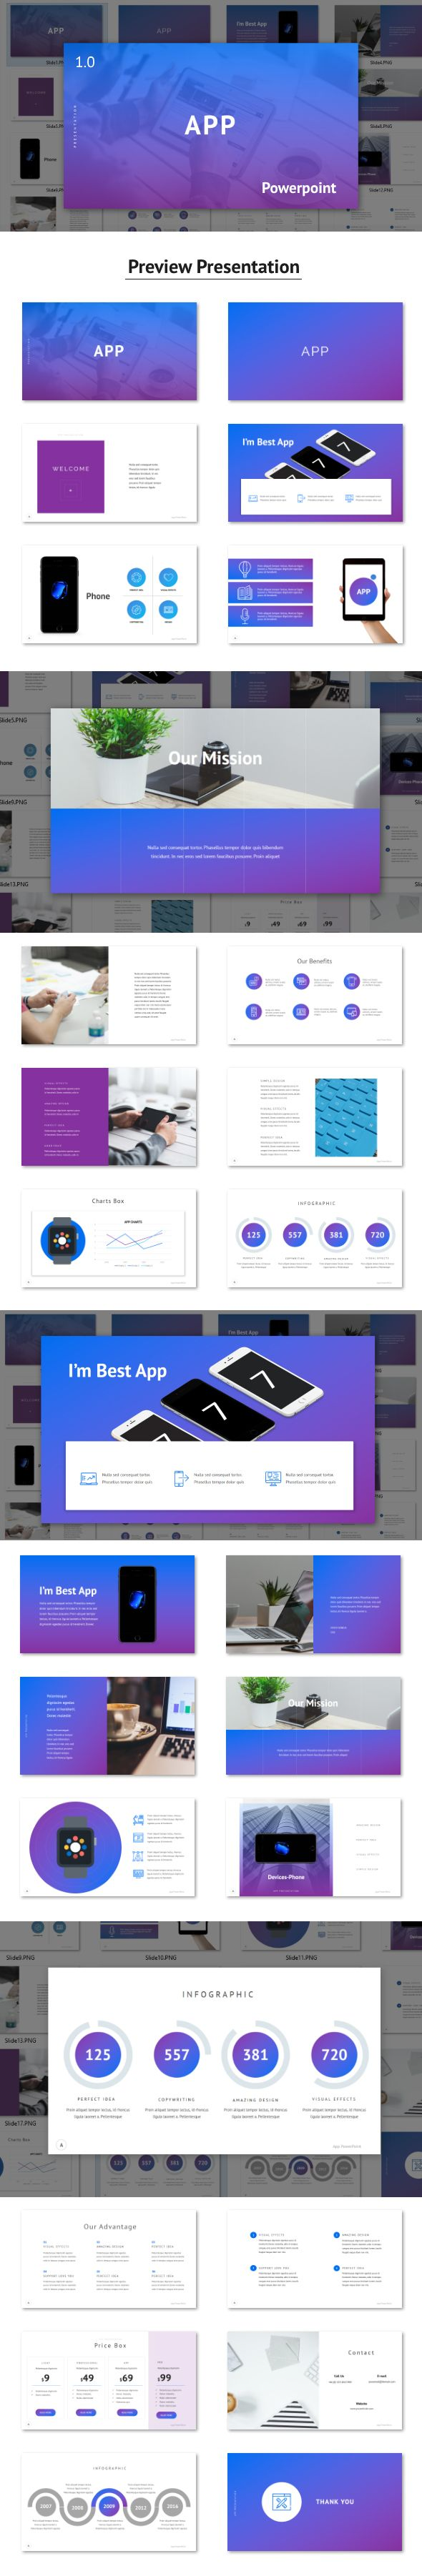 App - #Powerpoint Template - PowerPoint #Templates Presentation Templates Download here: https://graphicriver.net/item/app-powerpoint-template/19607858?ref=alena994